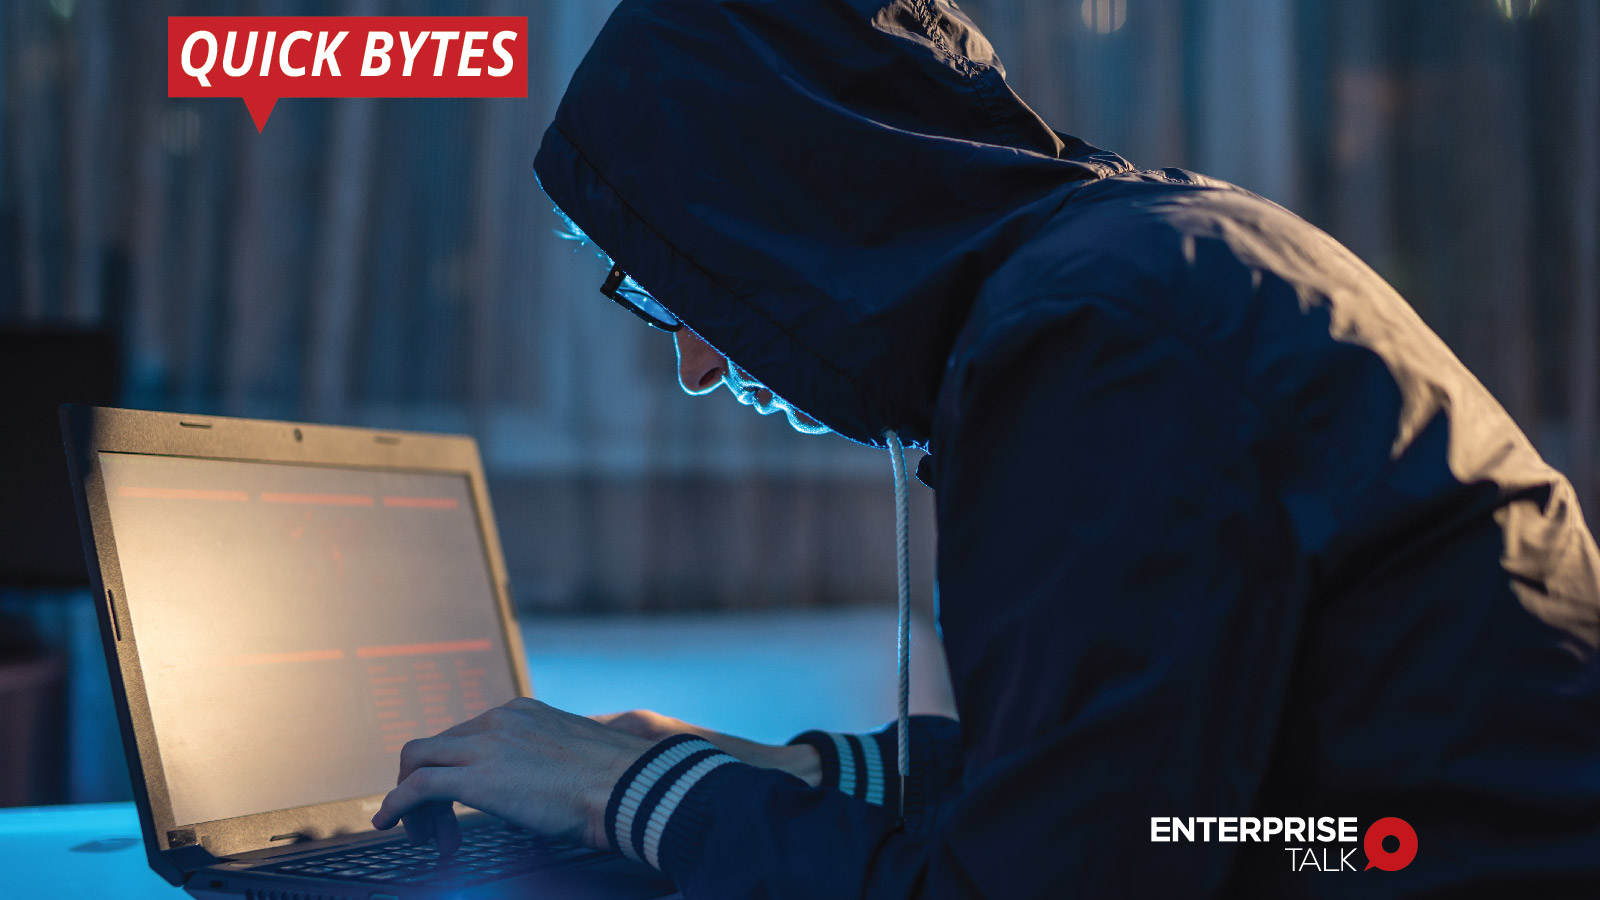 Cybercriminals, Electric Power, Intel Chips, Plundervolt, Hackers, Undervolting, IEEE Security and Privacy